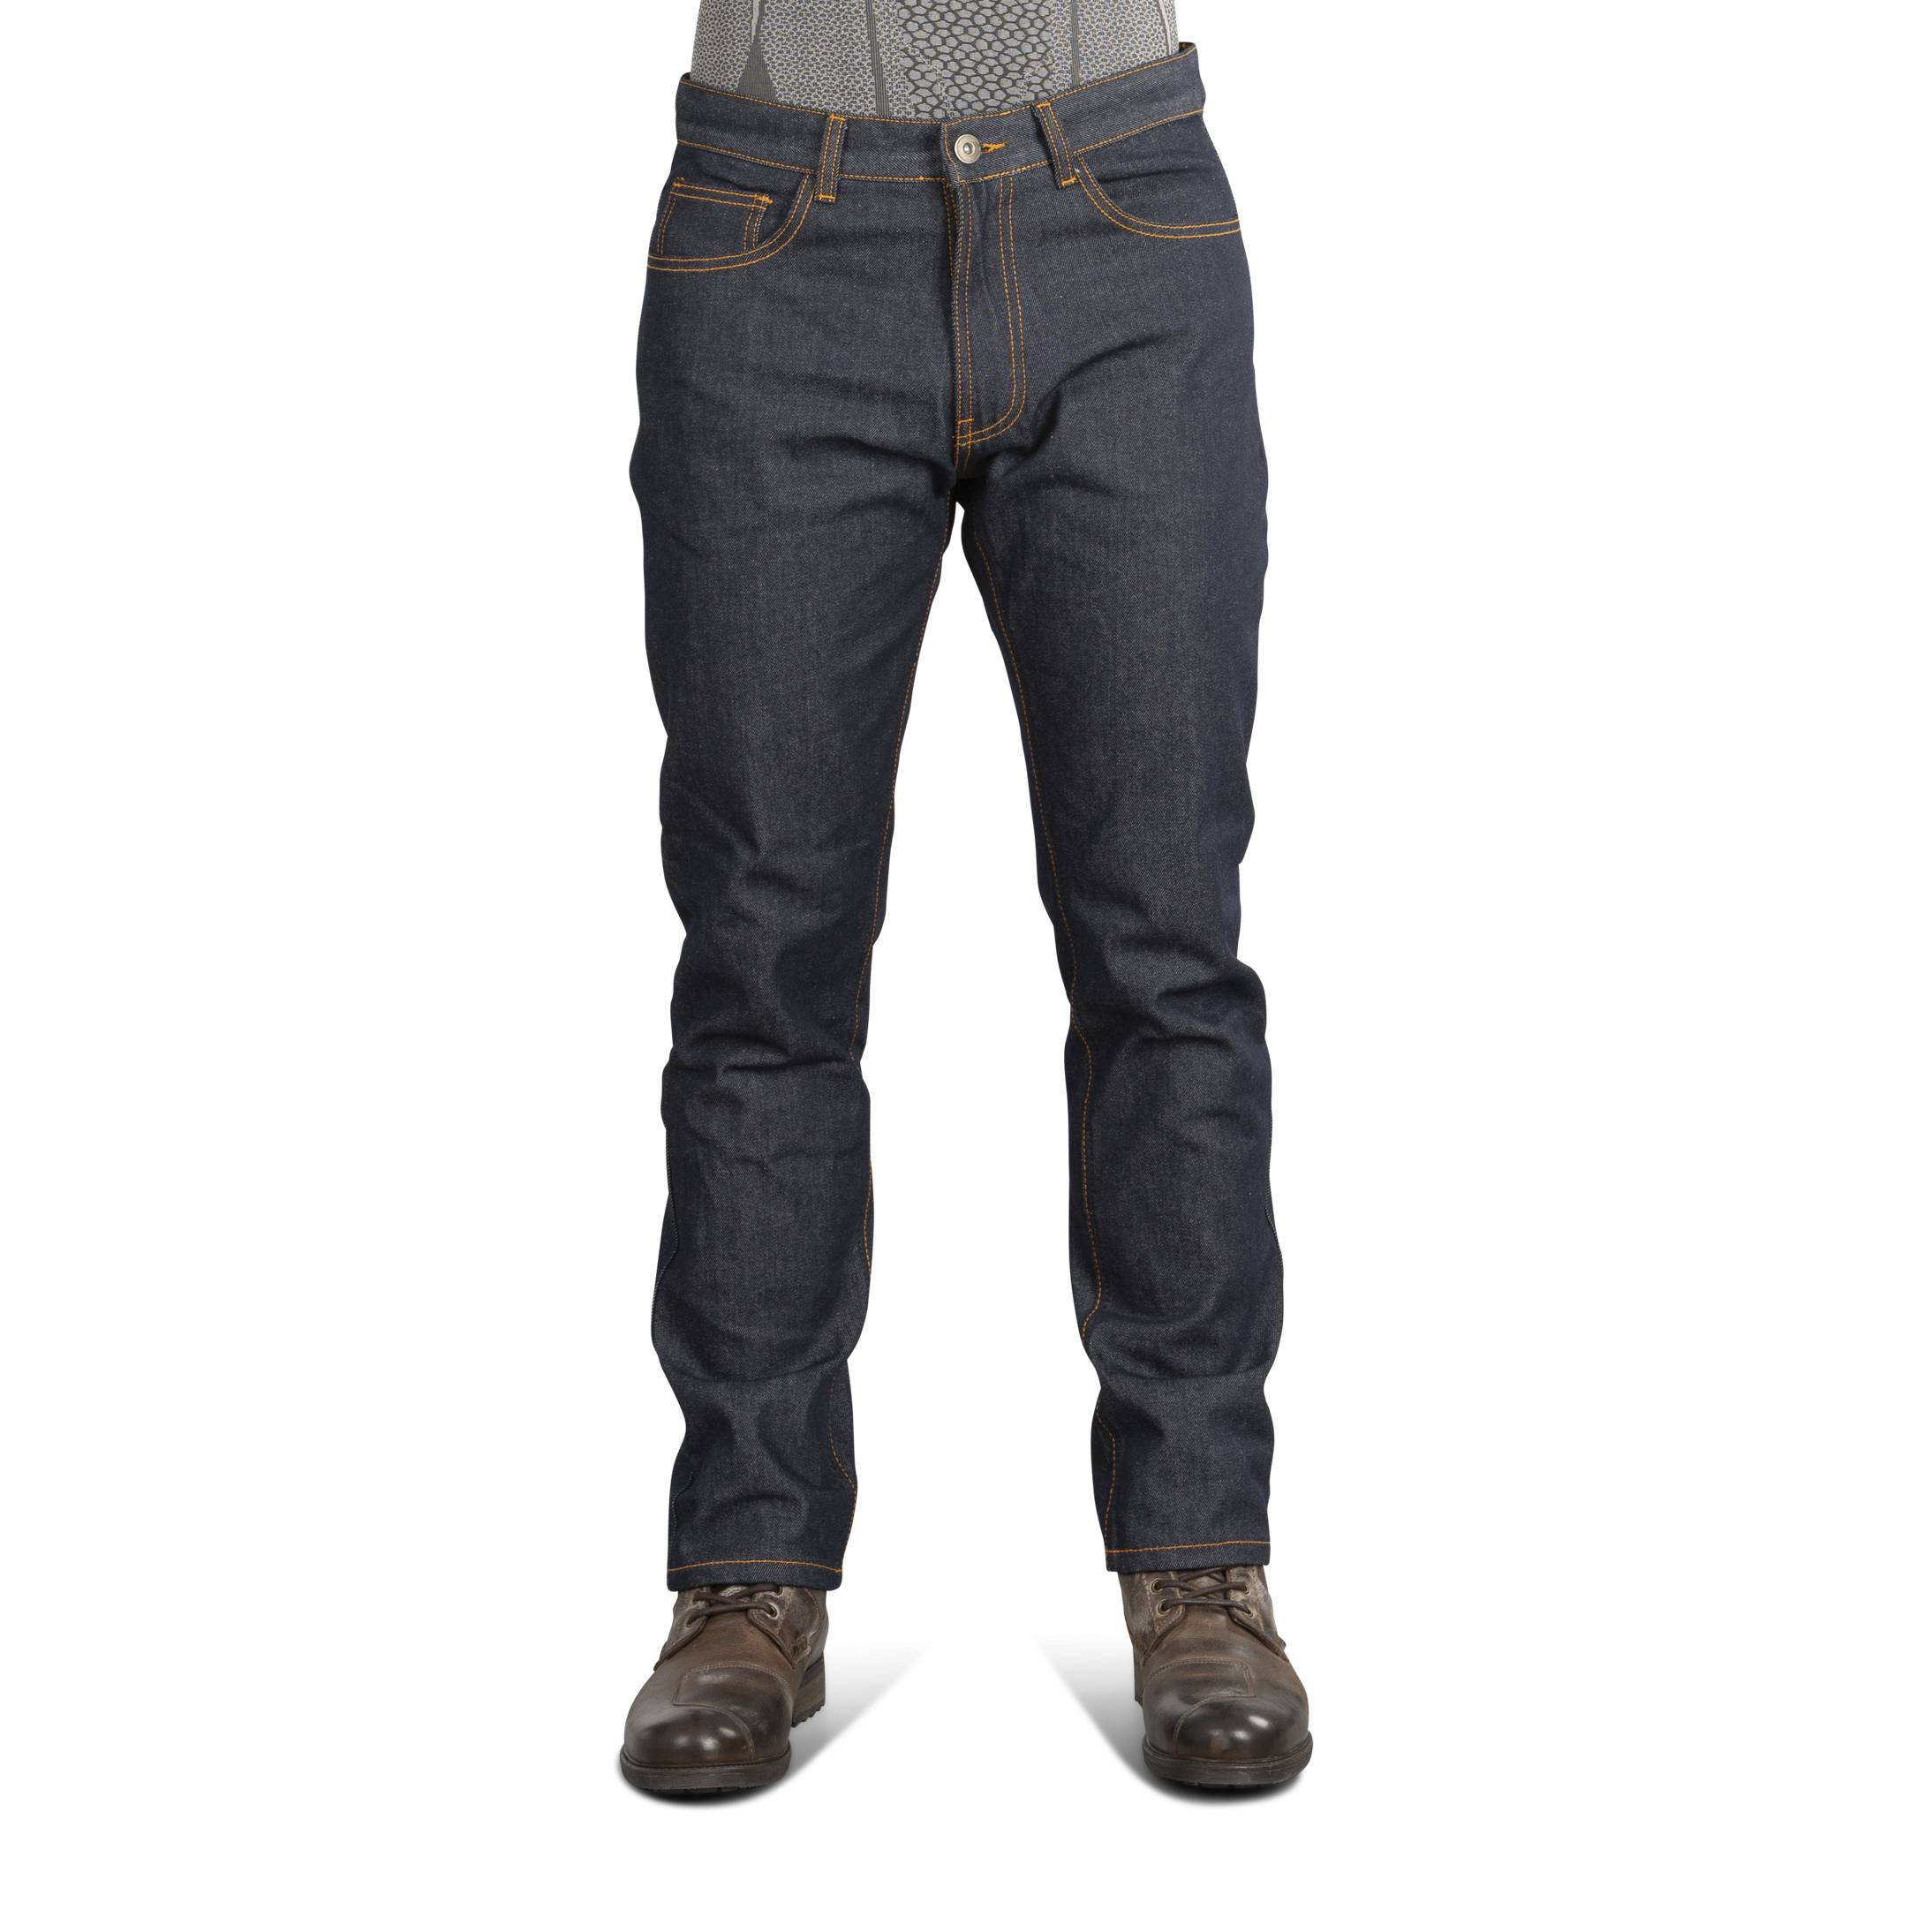 Course Jean Moto Course Heavy Duty Anti-Fit Raw Denim W34 L32